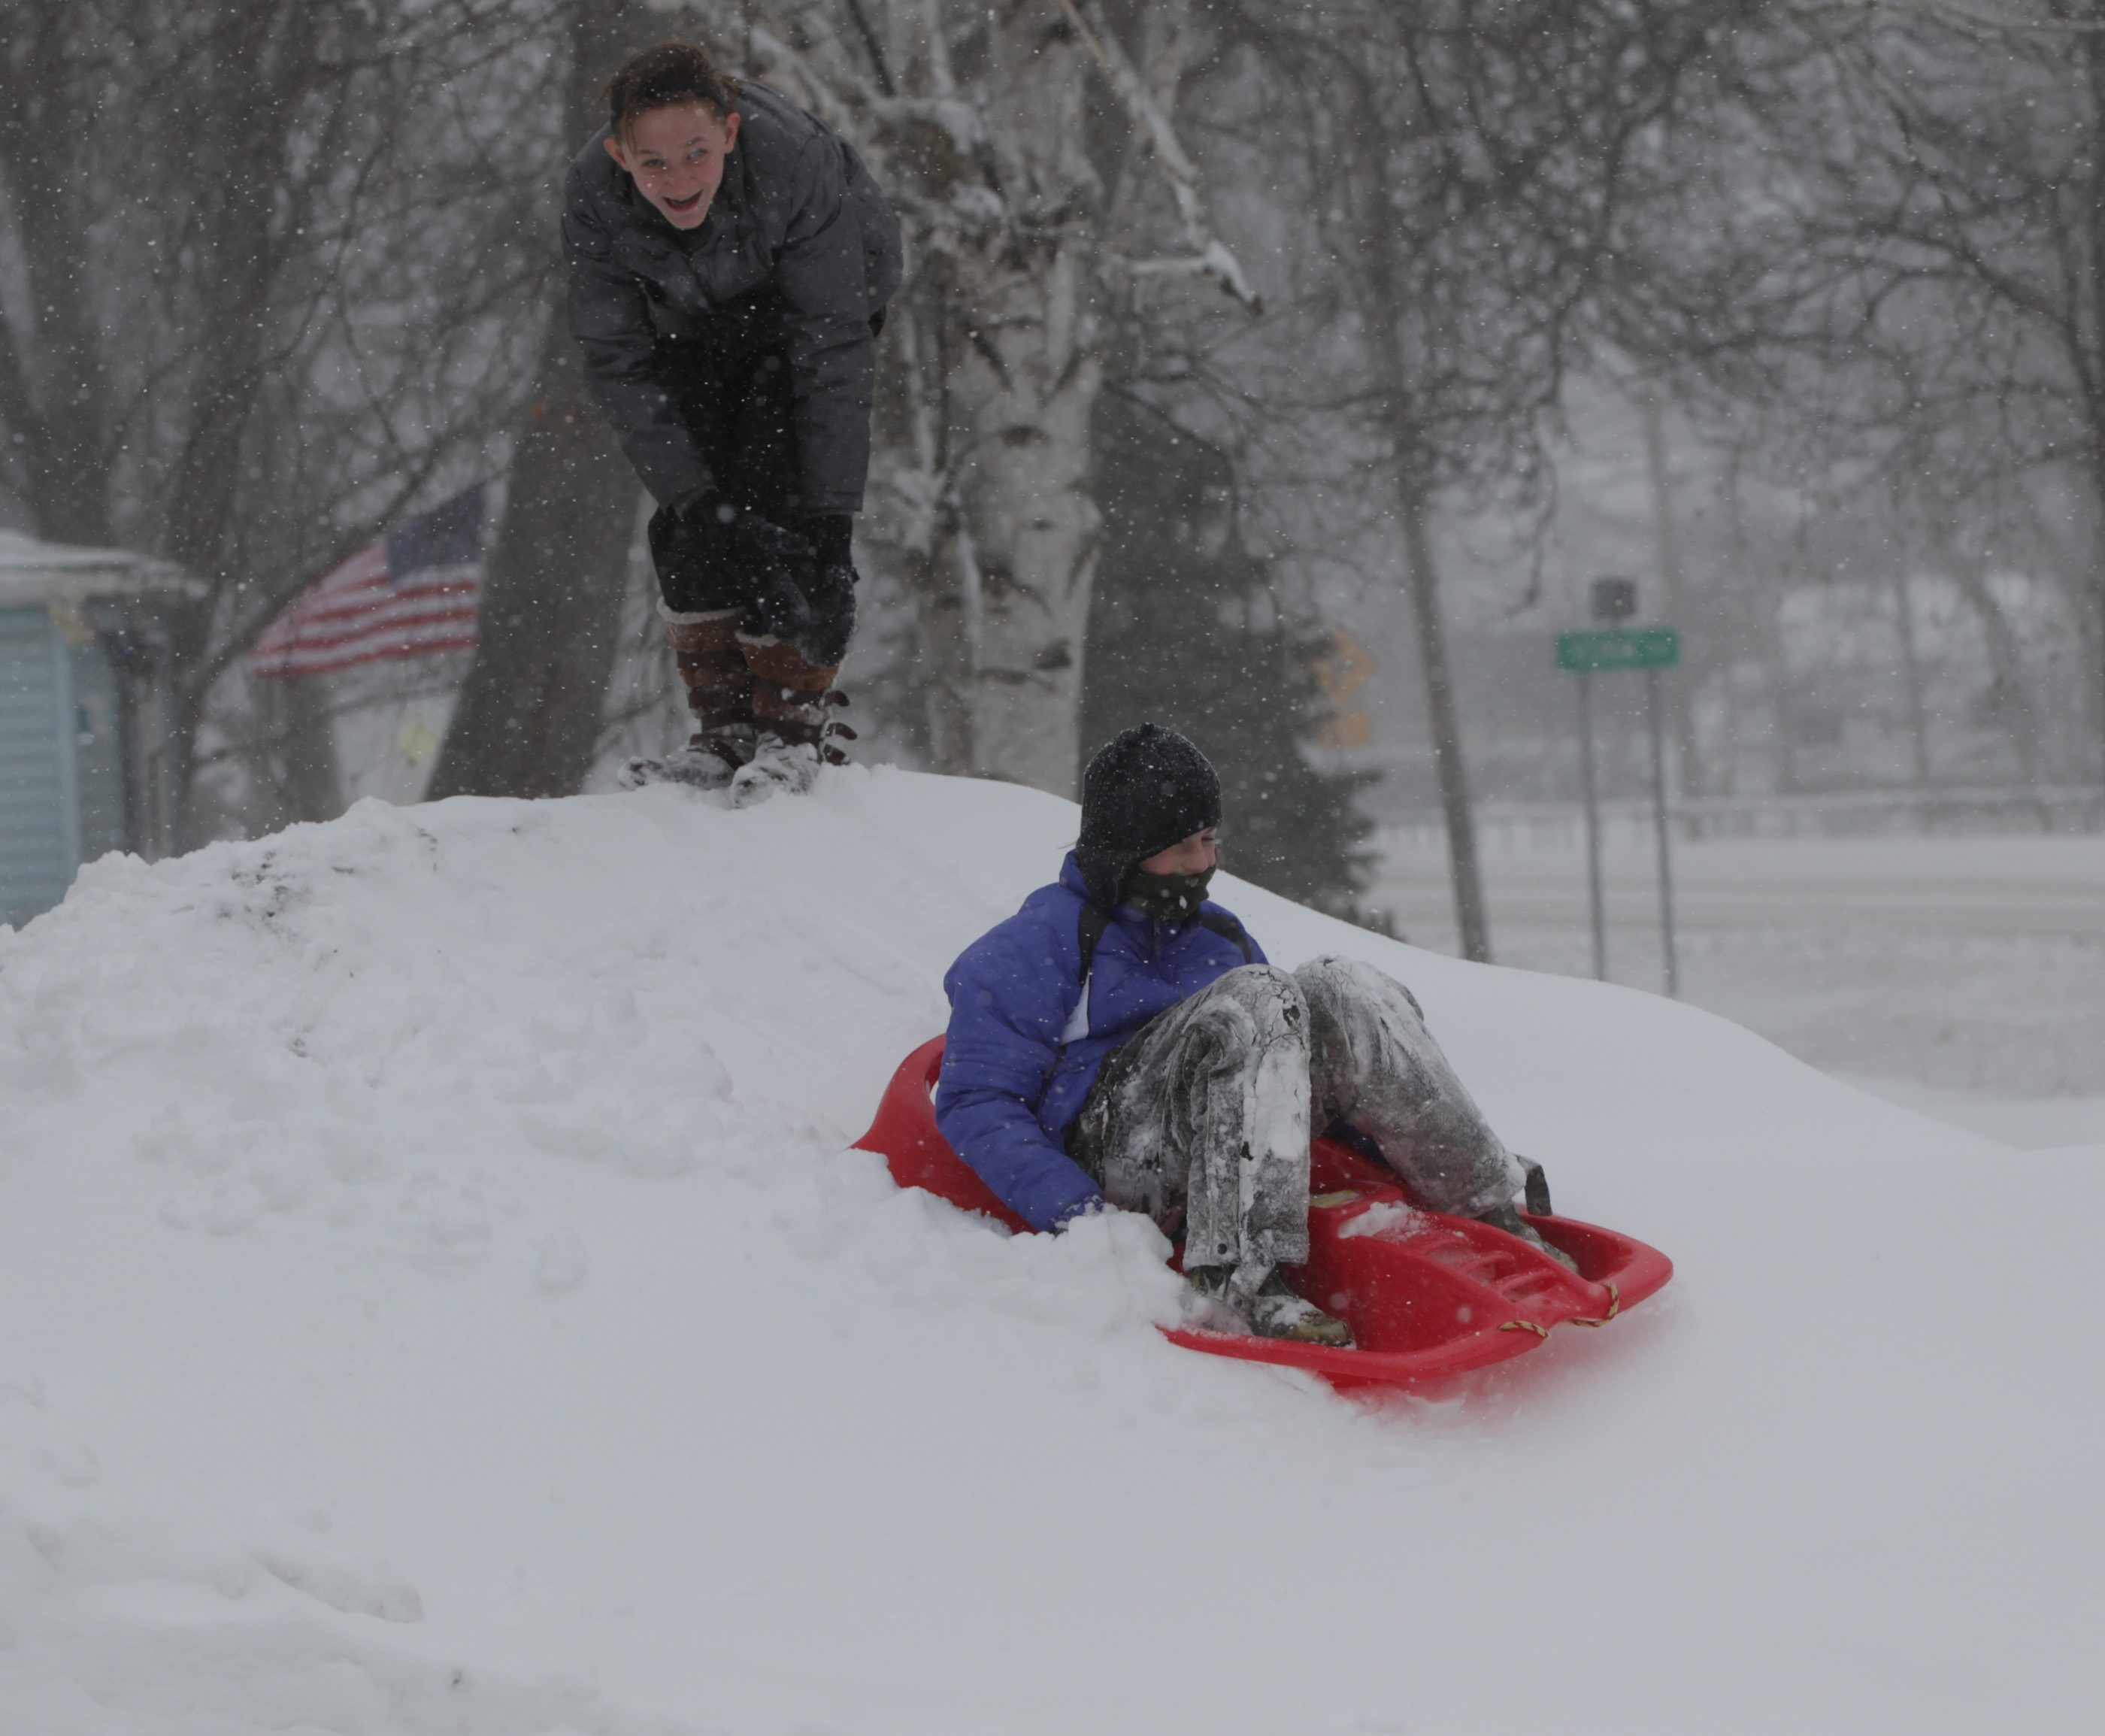 With school closed,  Hallee Mack and Abigail Sawin play in the snow in North Tonawanda Wednesday.